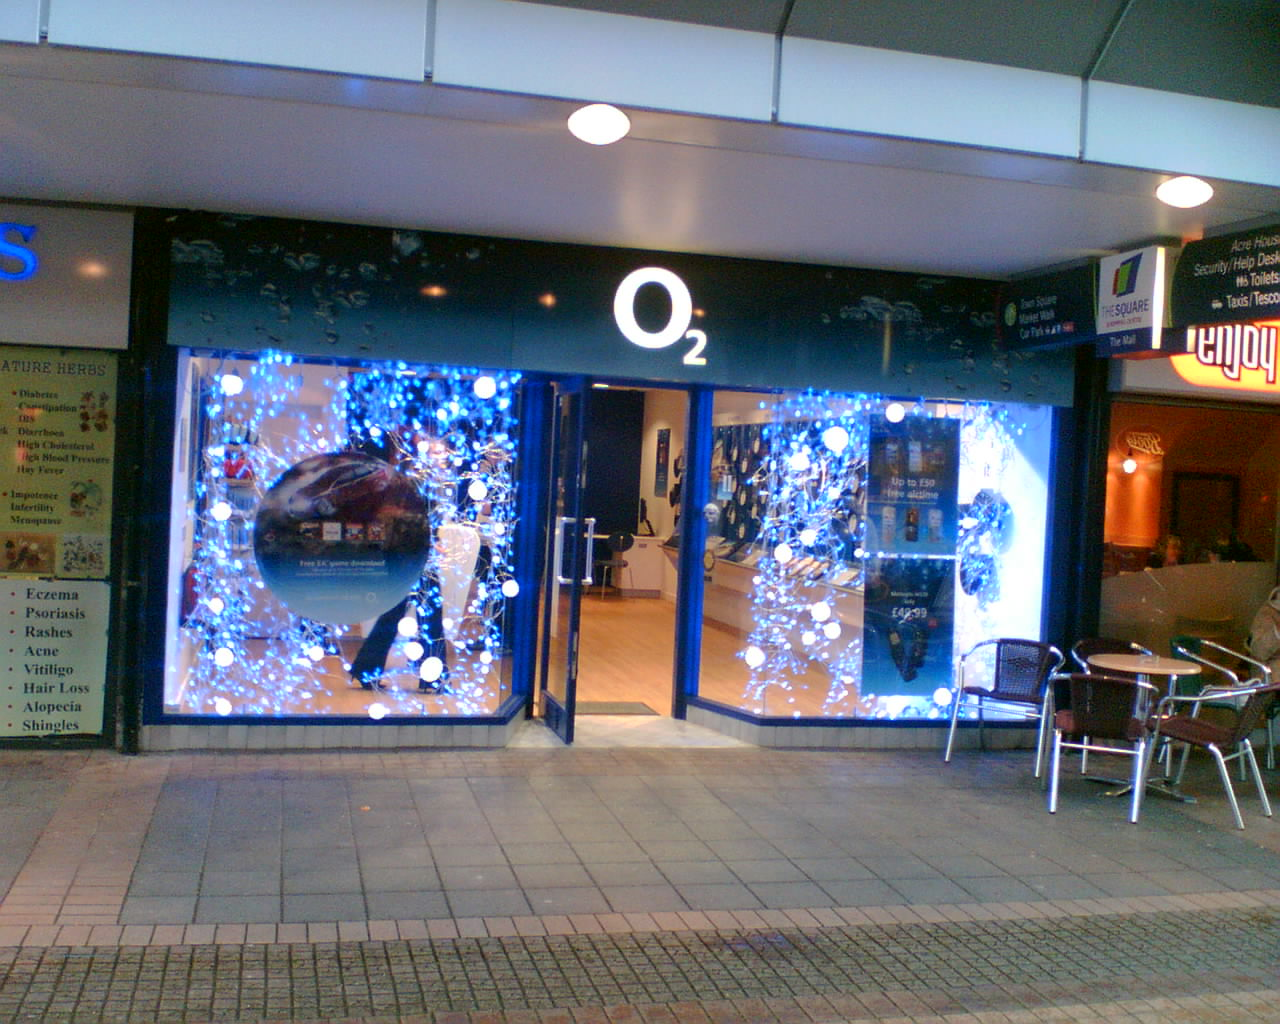 O2 To Build Nationwide Wi-Fi Network, Compete With BSkyB and BT